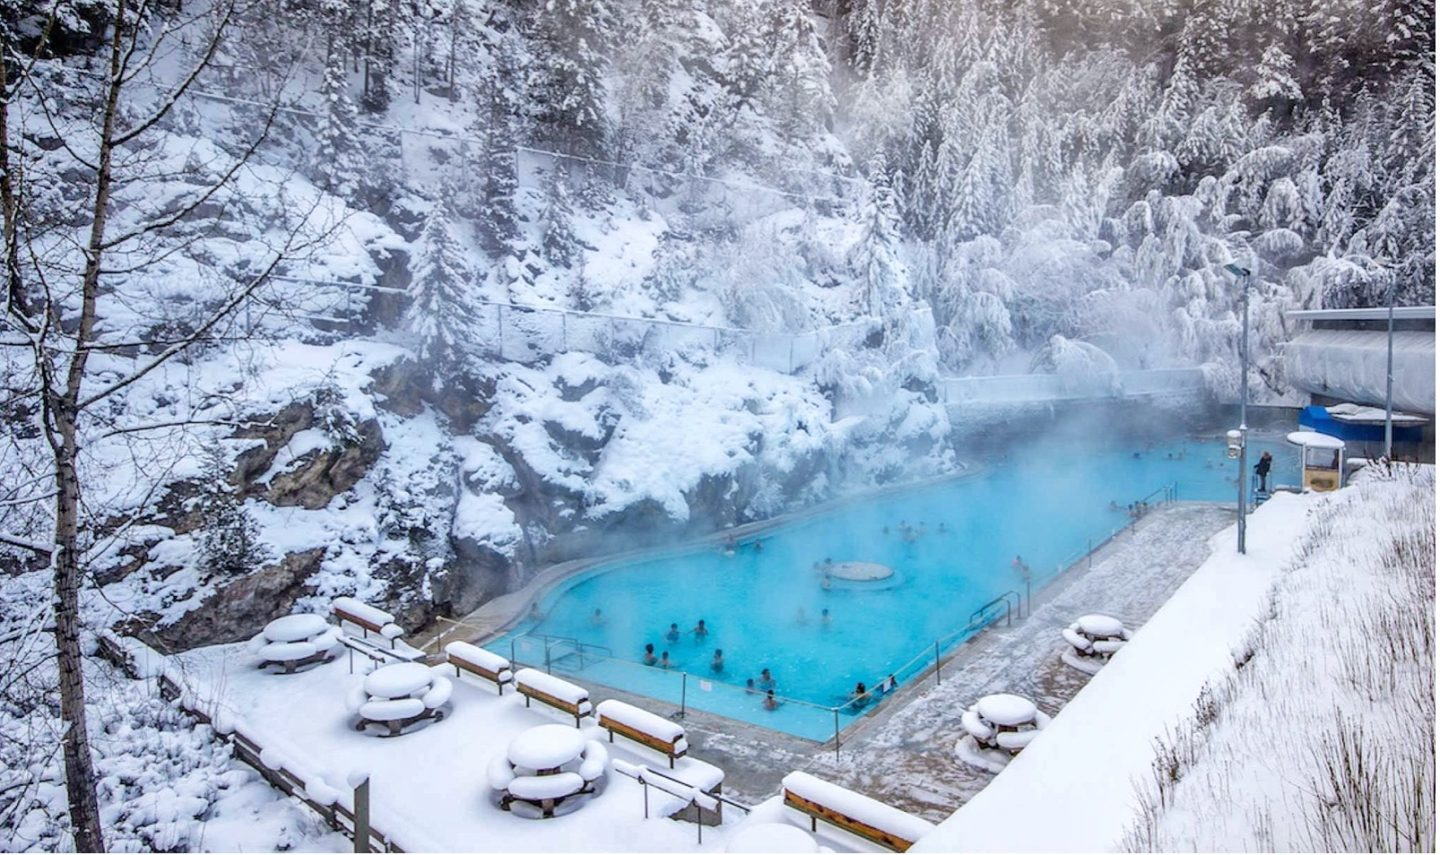 Canadian Hot Springs - off season in Canada